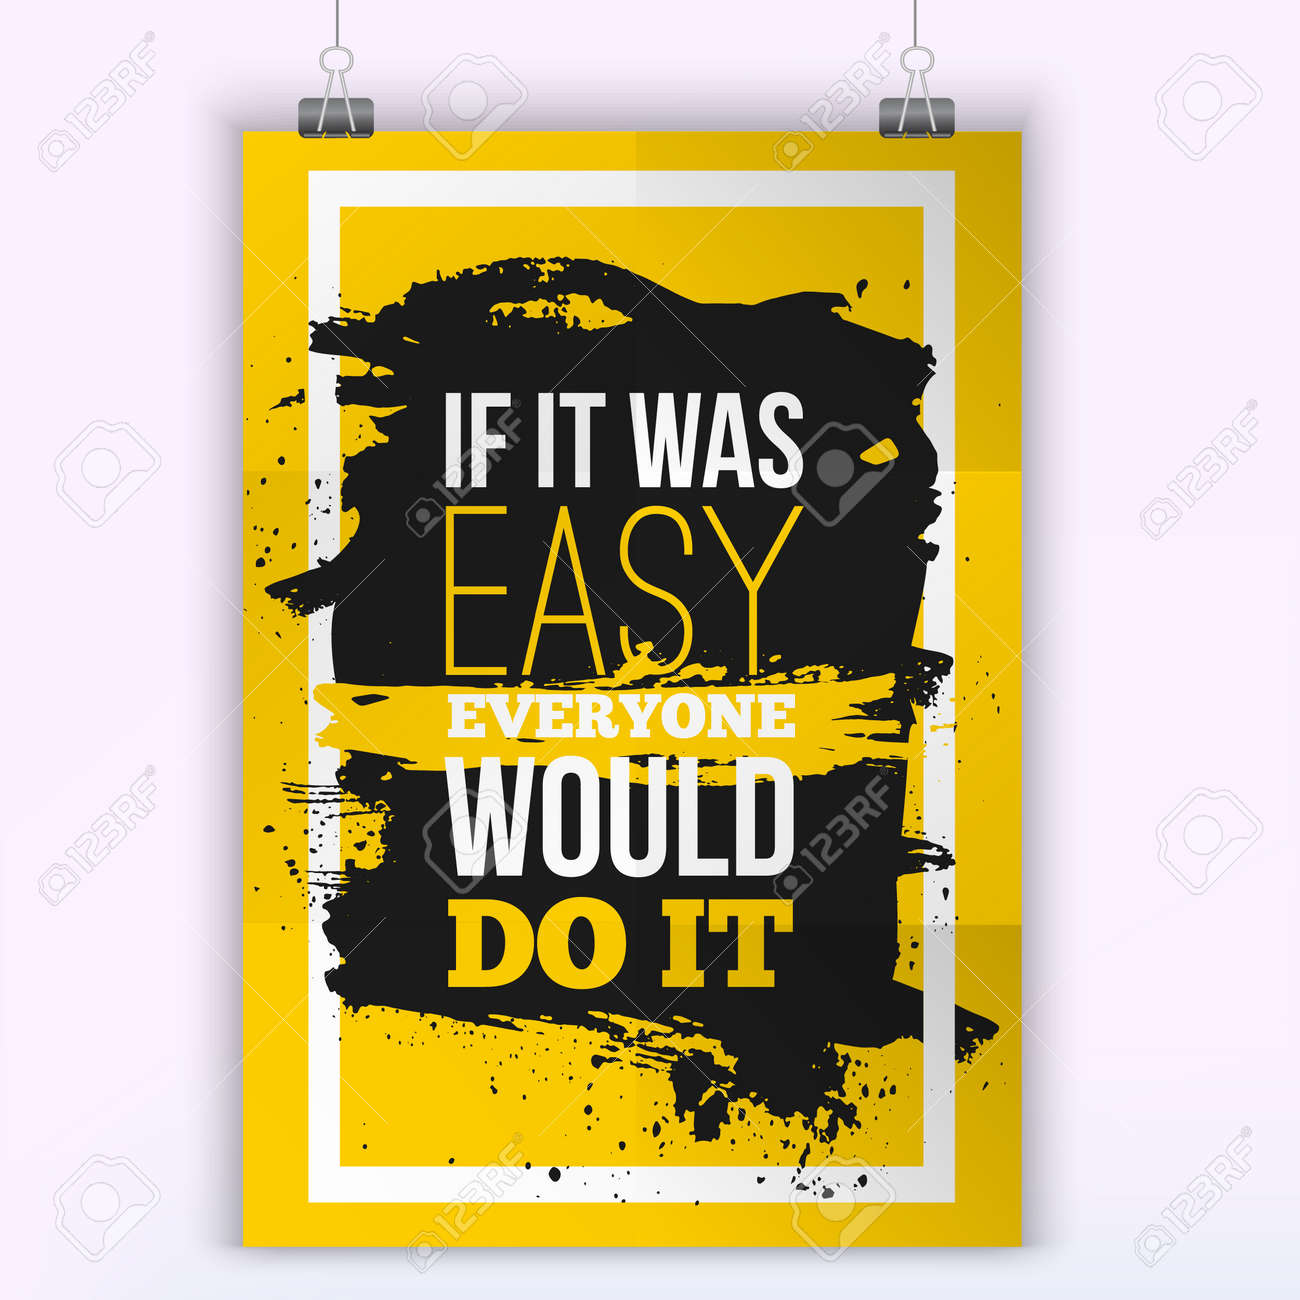 Everyone Would Do It If Was Easy Motivation Business Quote Mock